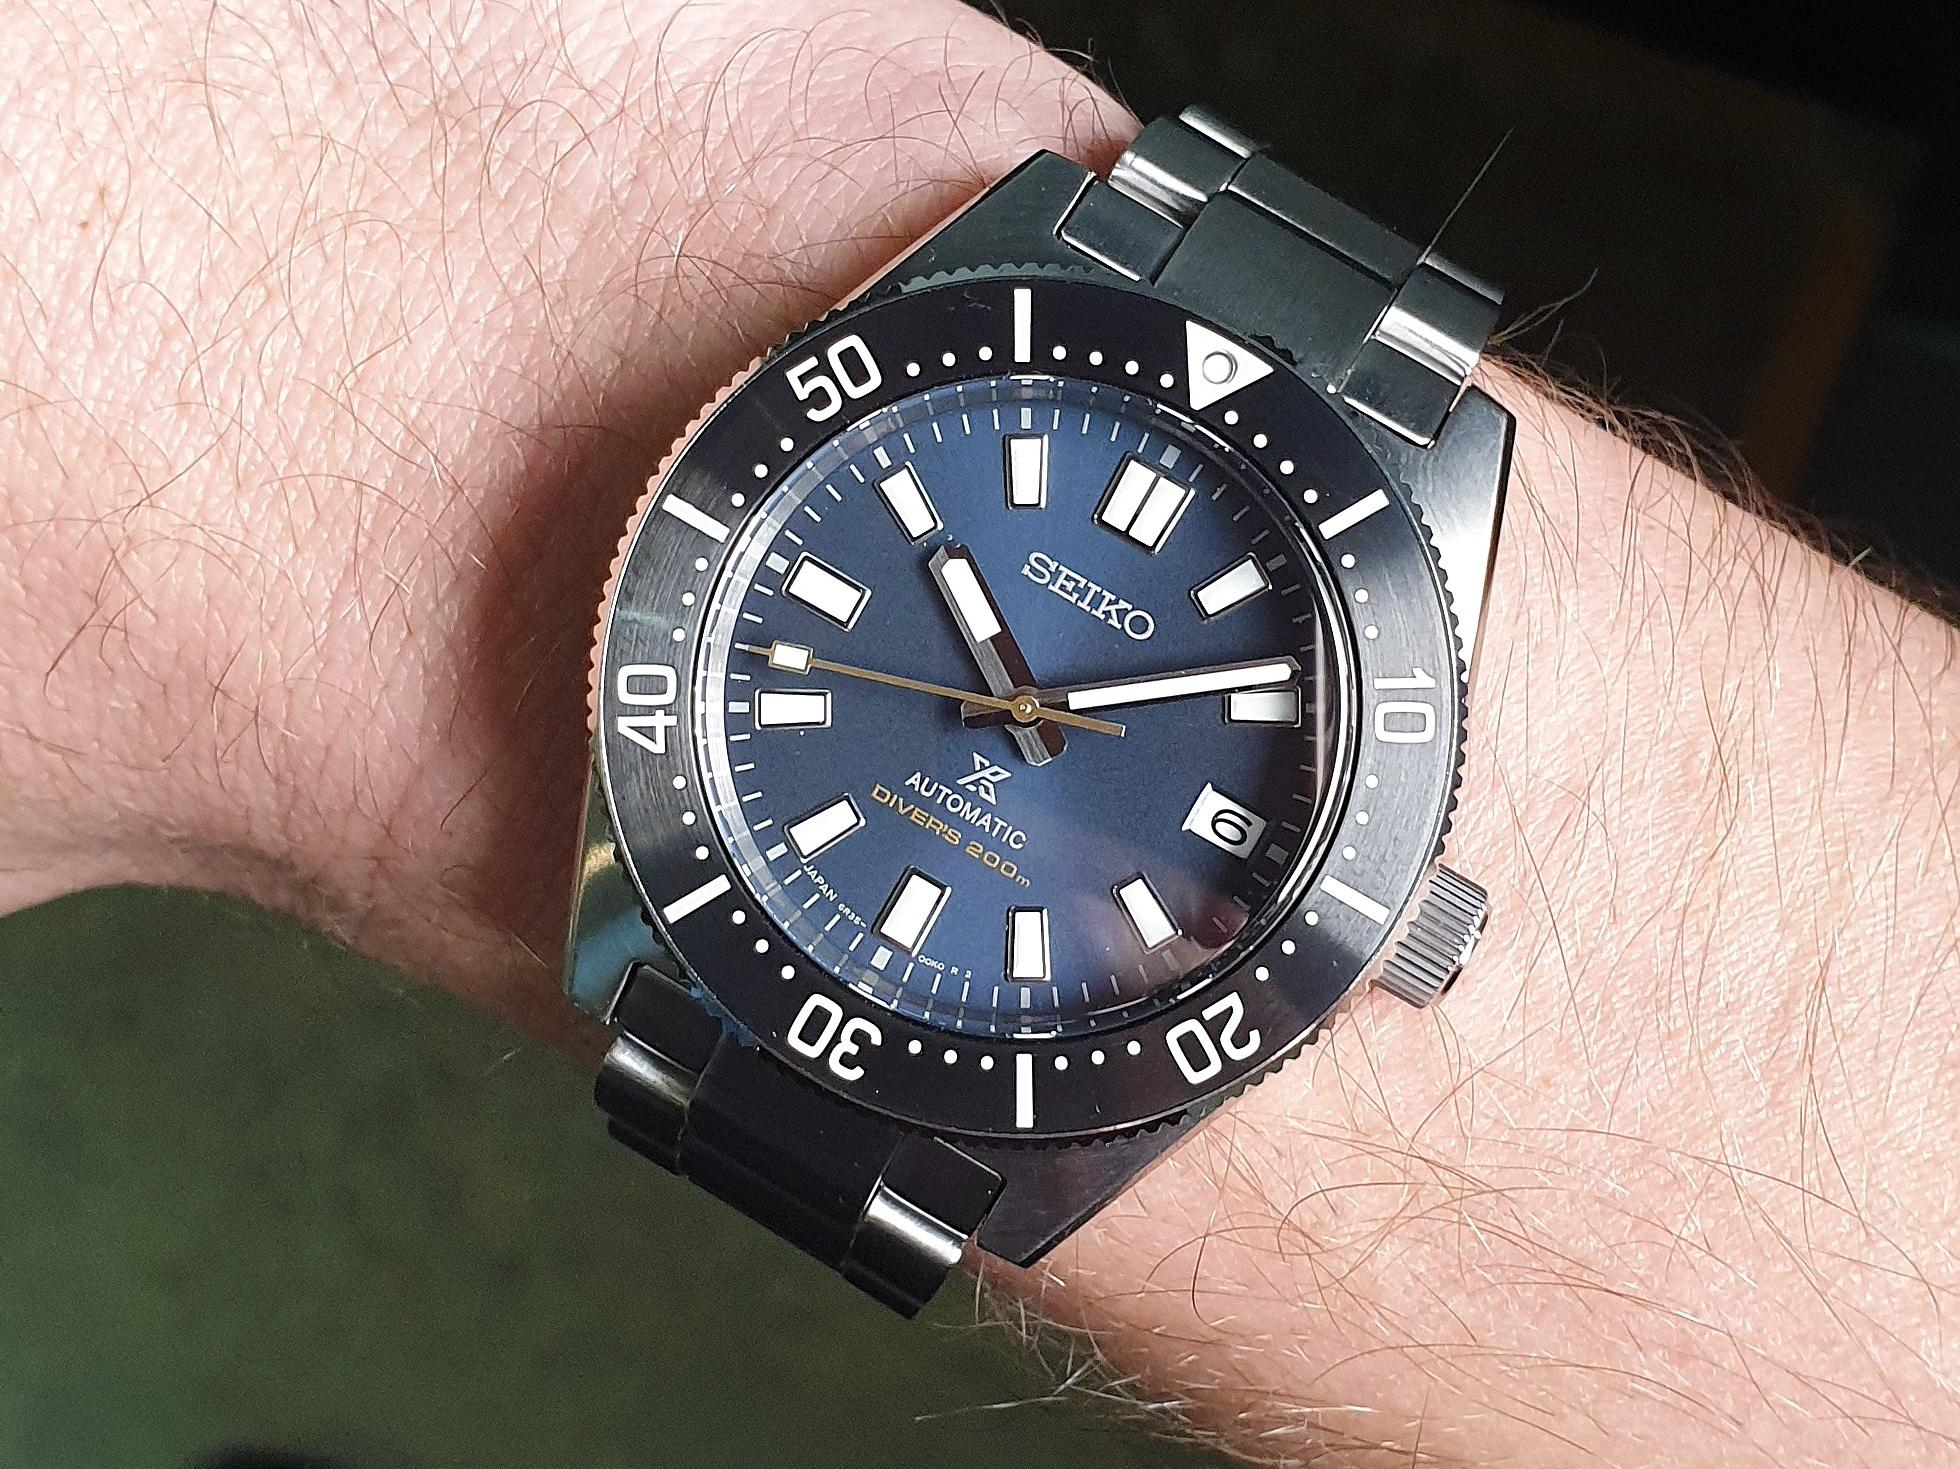 The breakaway Seiko of 2020 is this affordable, classic dive watch for under $1500USD, the SPB149J